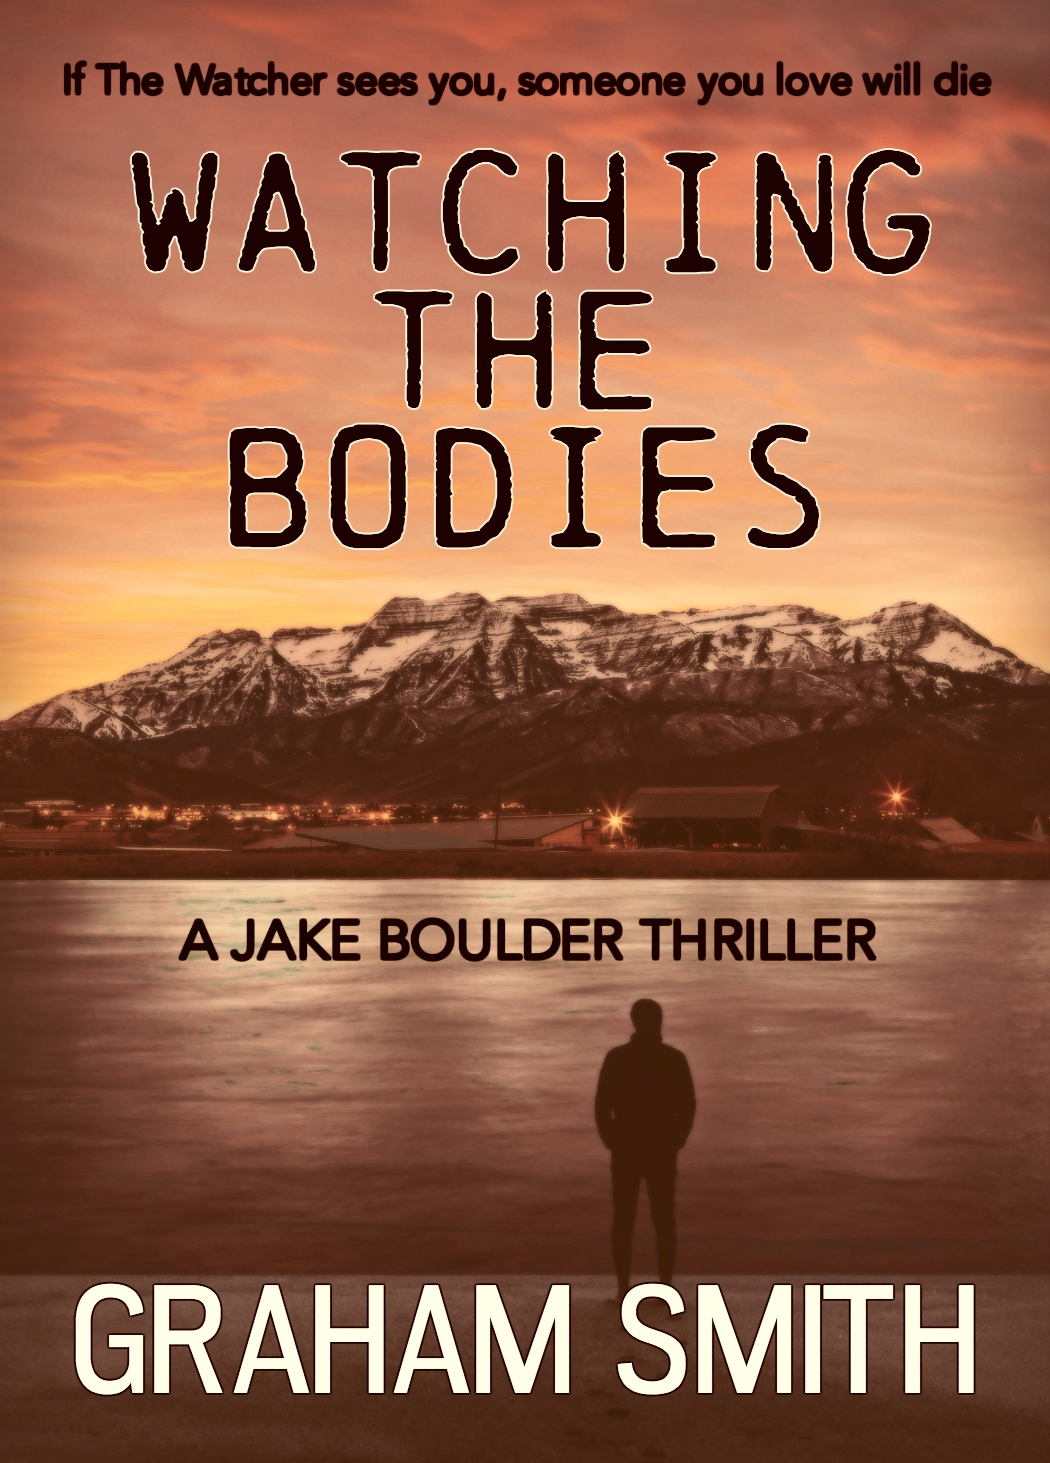 Watching the Bodies - Graham Smith - Book Cover